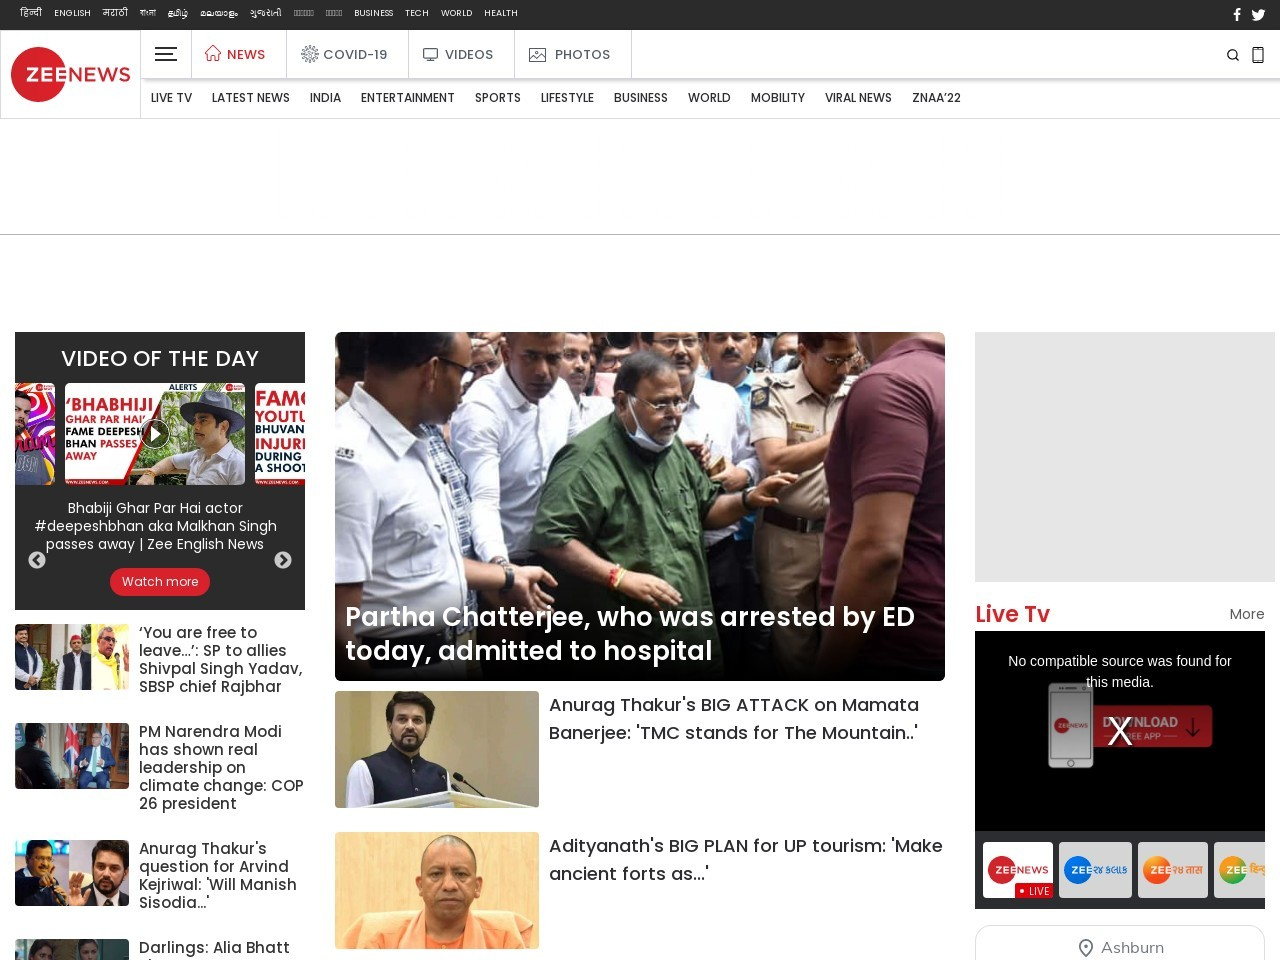 ICC match referee Chris Board rates Pune pitch 'poor'; BCCI given 14 days to respond